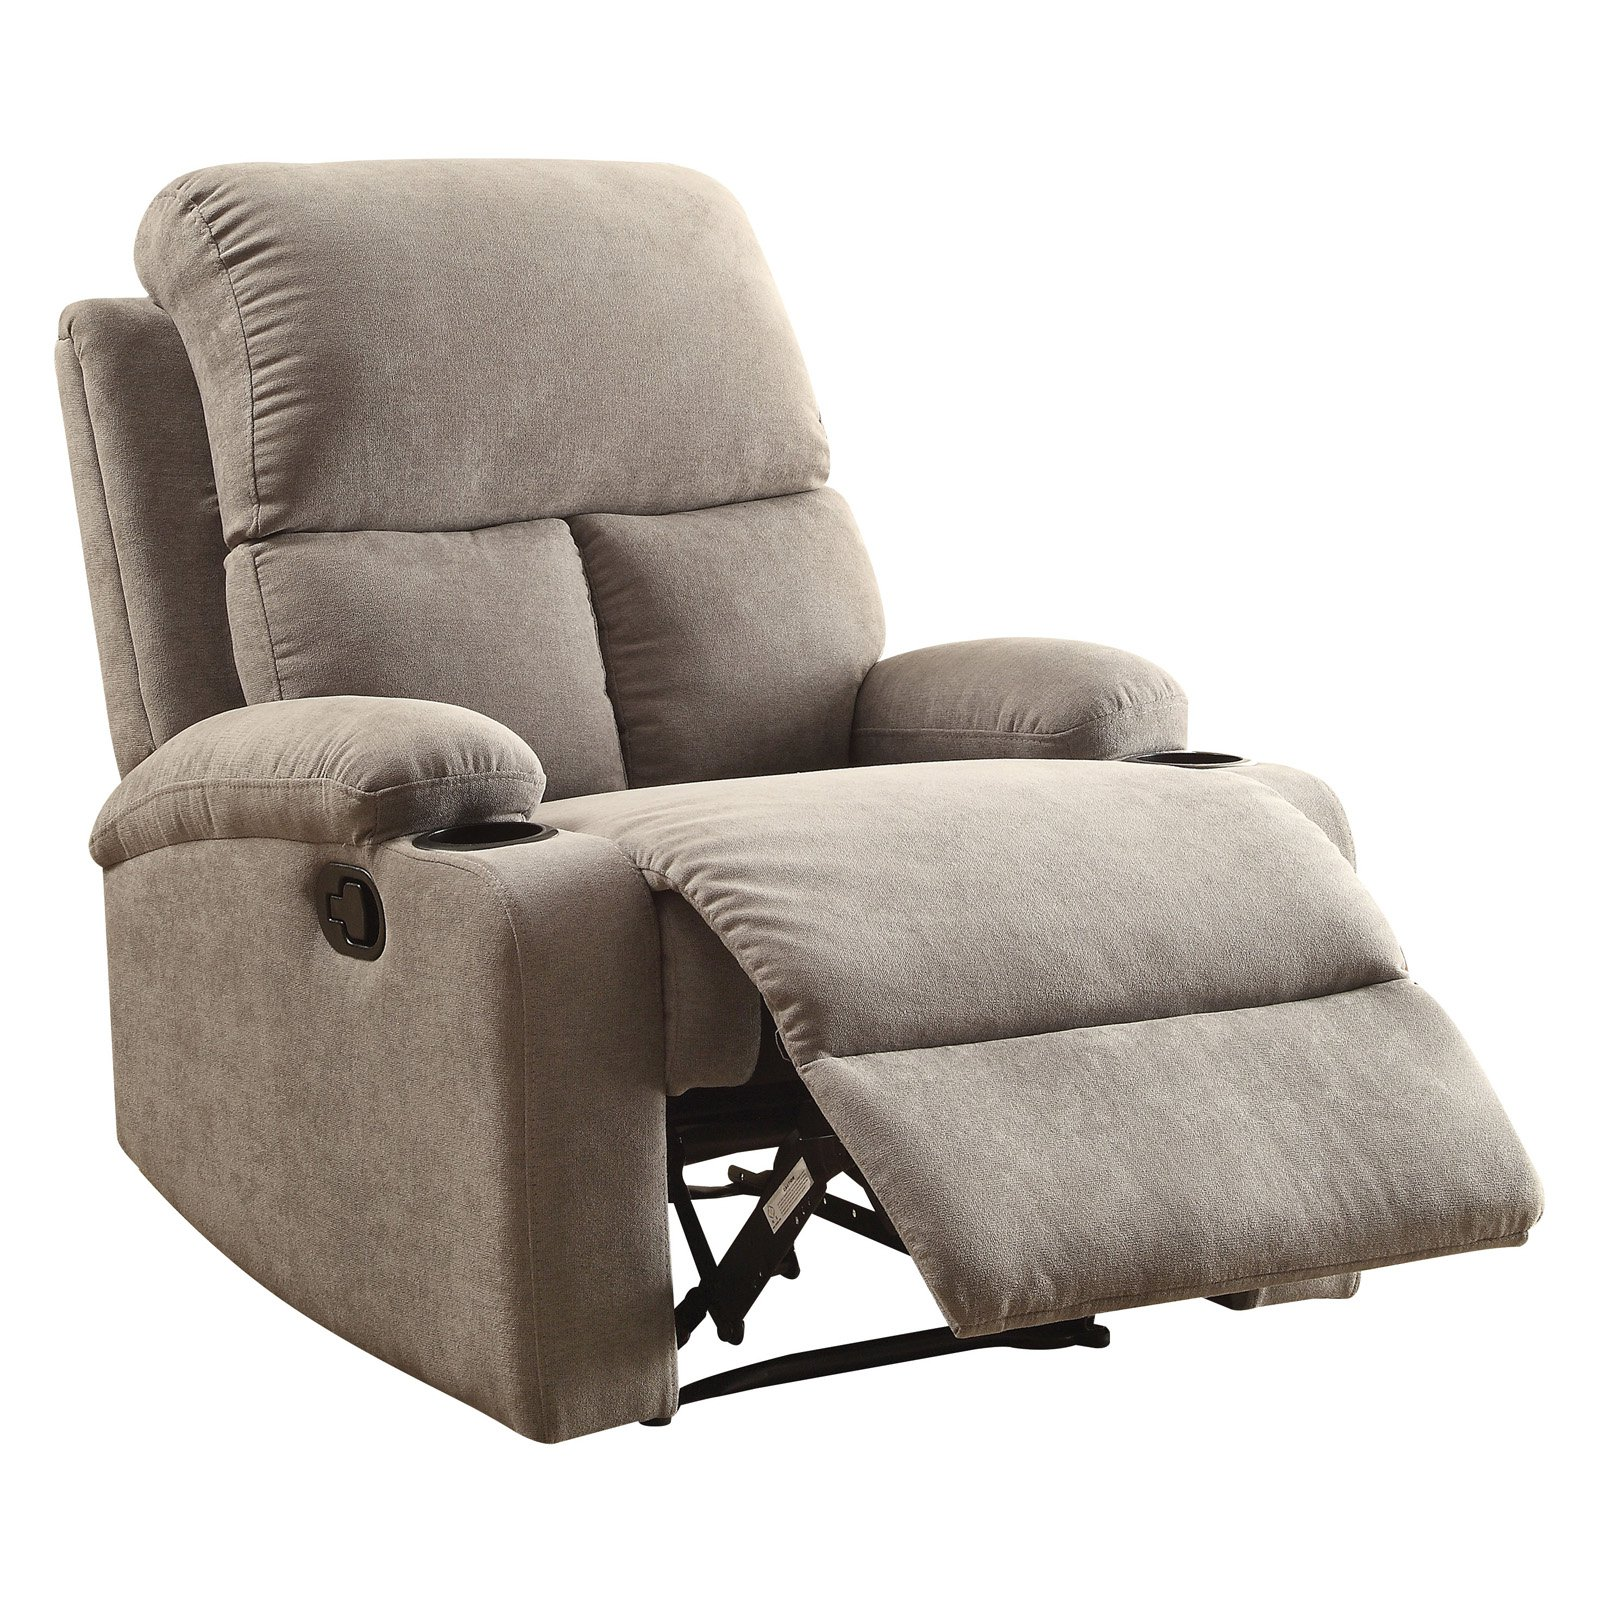 ACME Rosia Velvet Recliner with Cup Holder, Multiple Colors by Acme Furniture